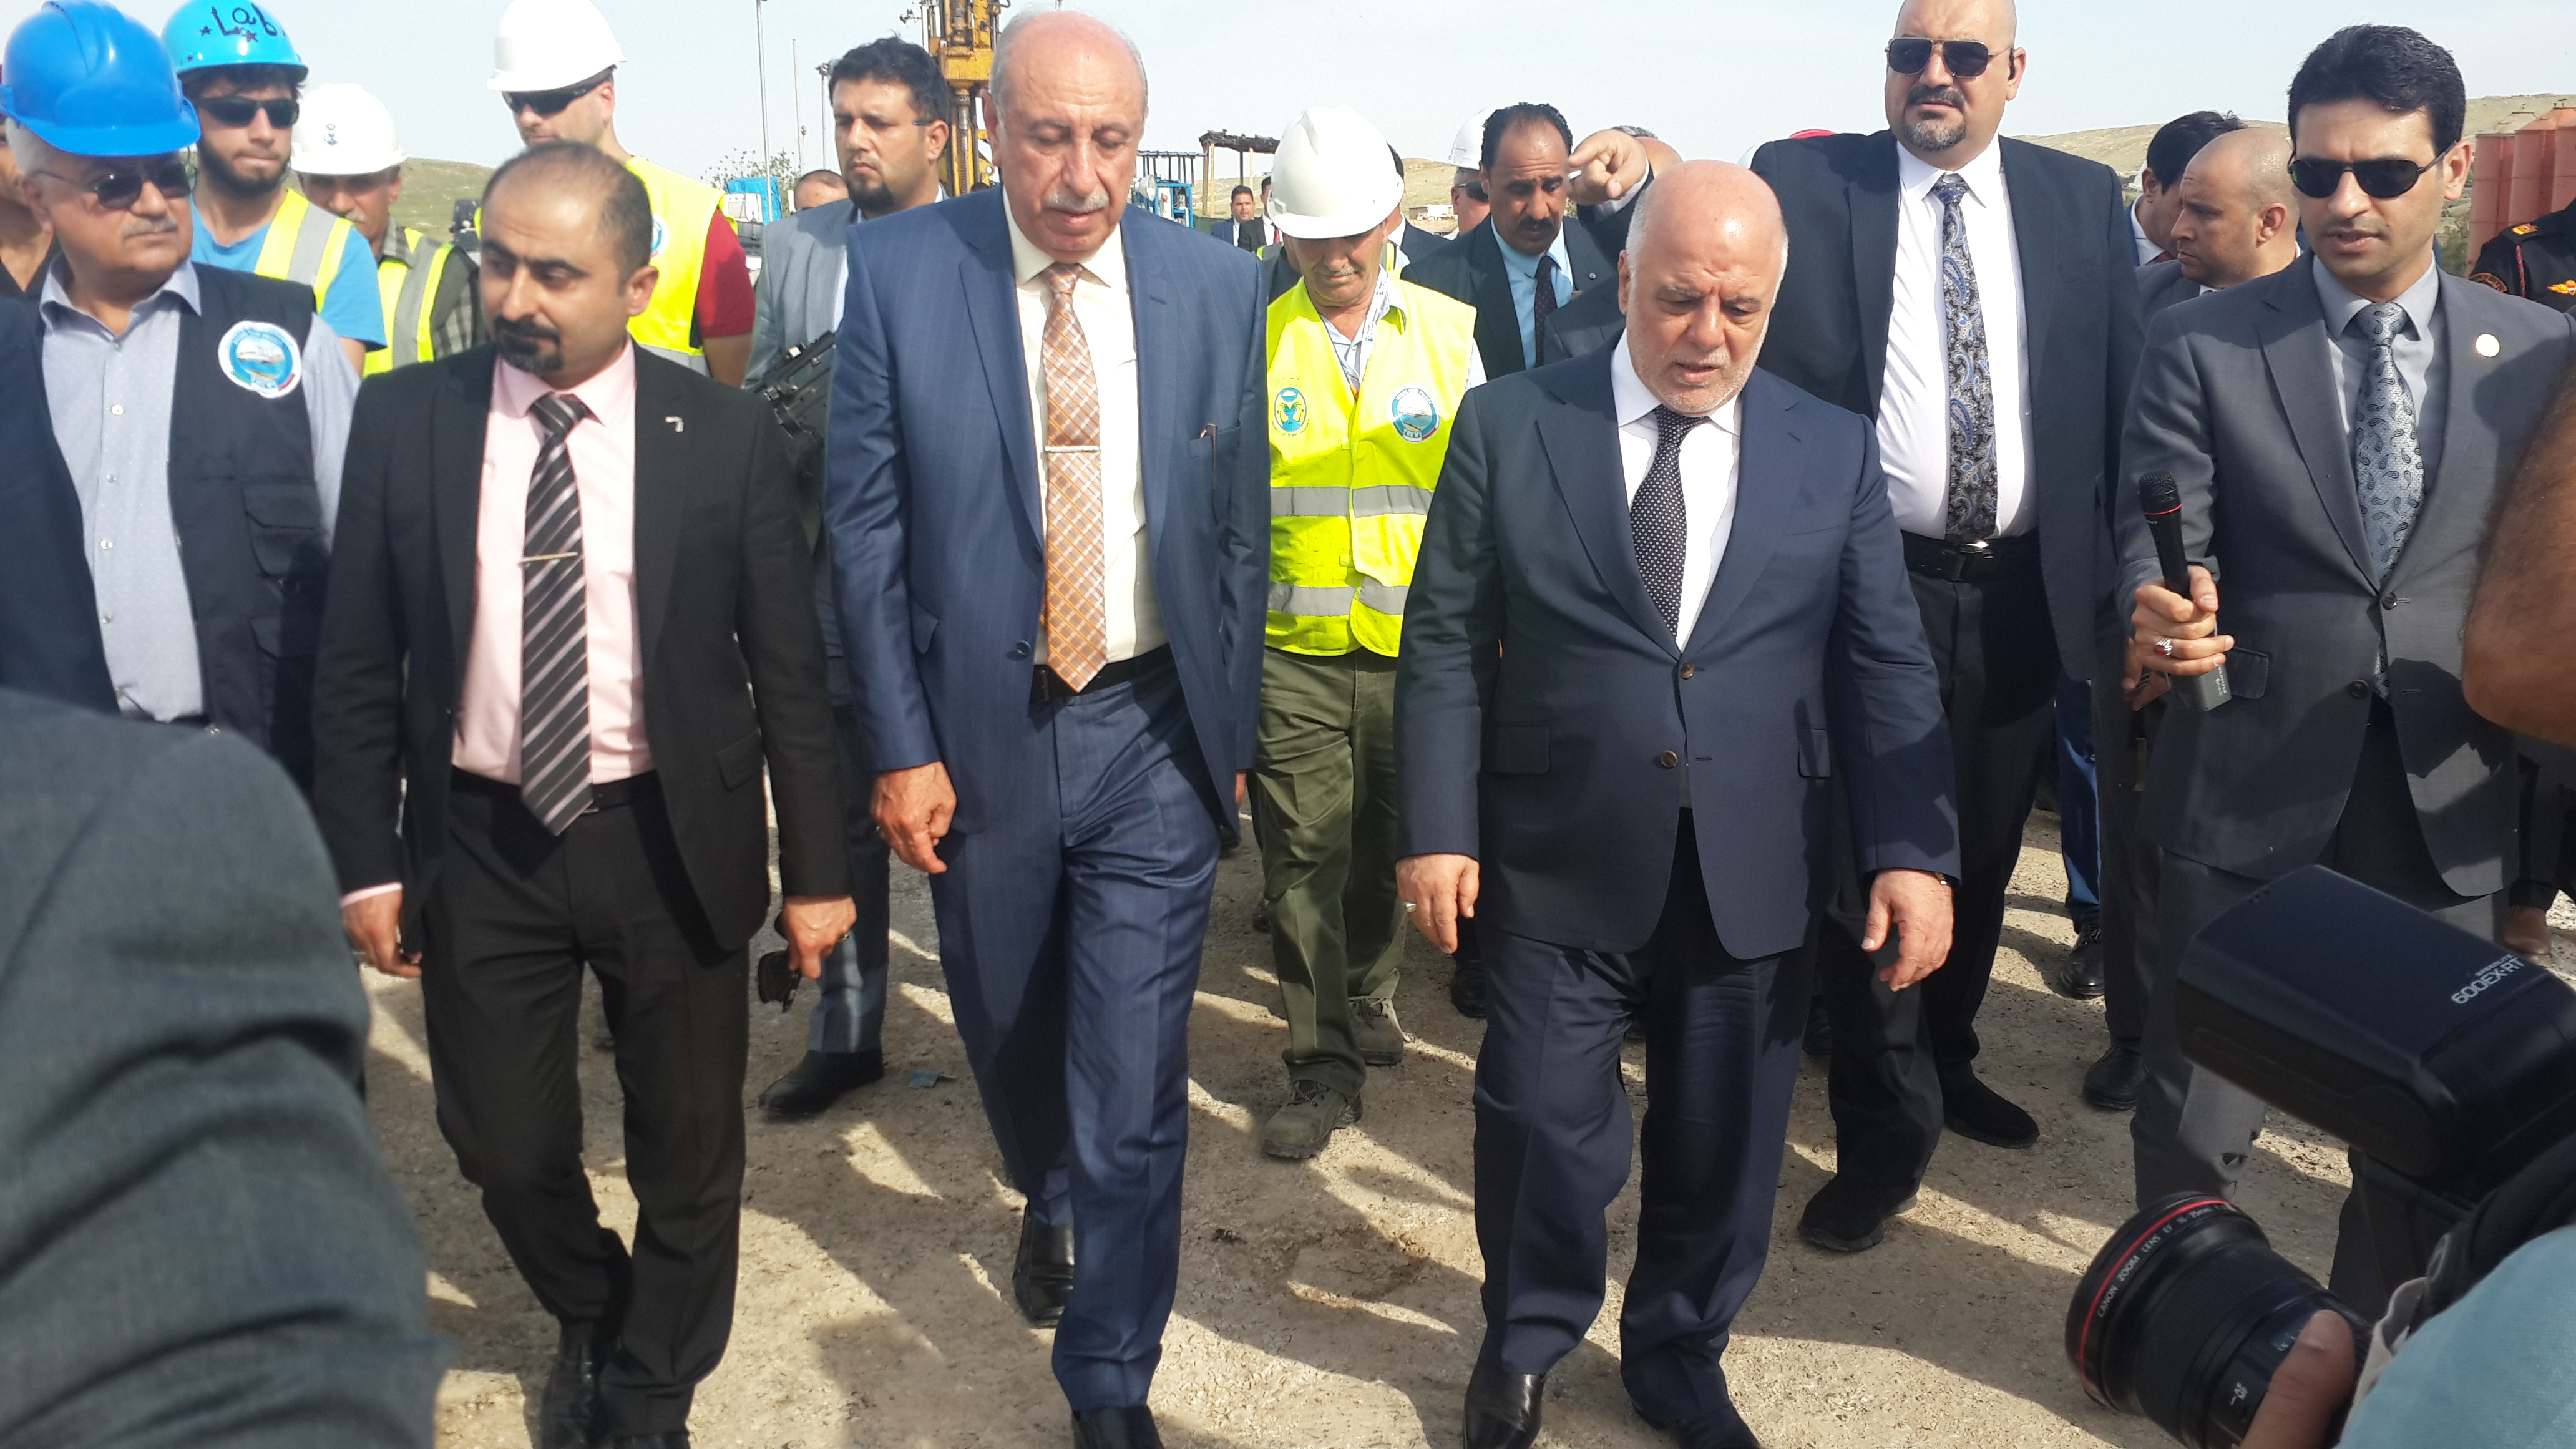 Visit of Al-Abadi the Iraqi Prime Minister Trevi spa